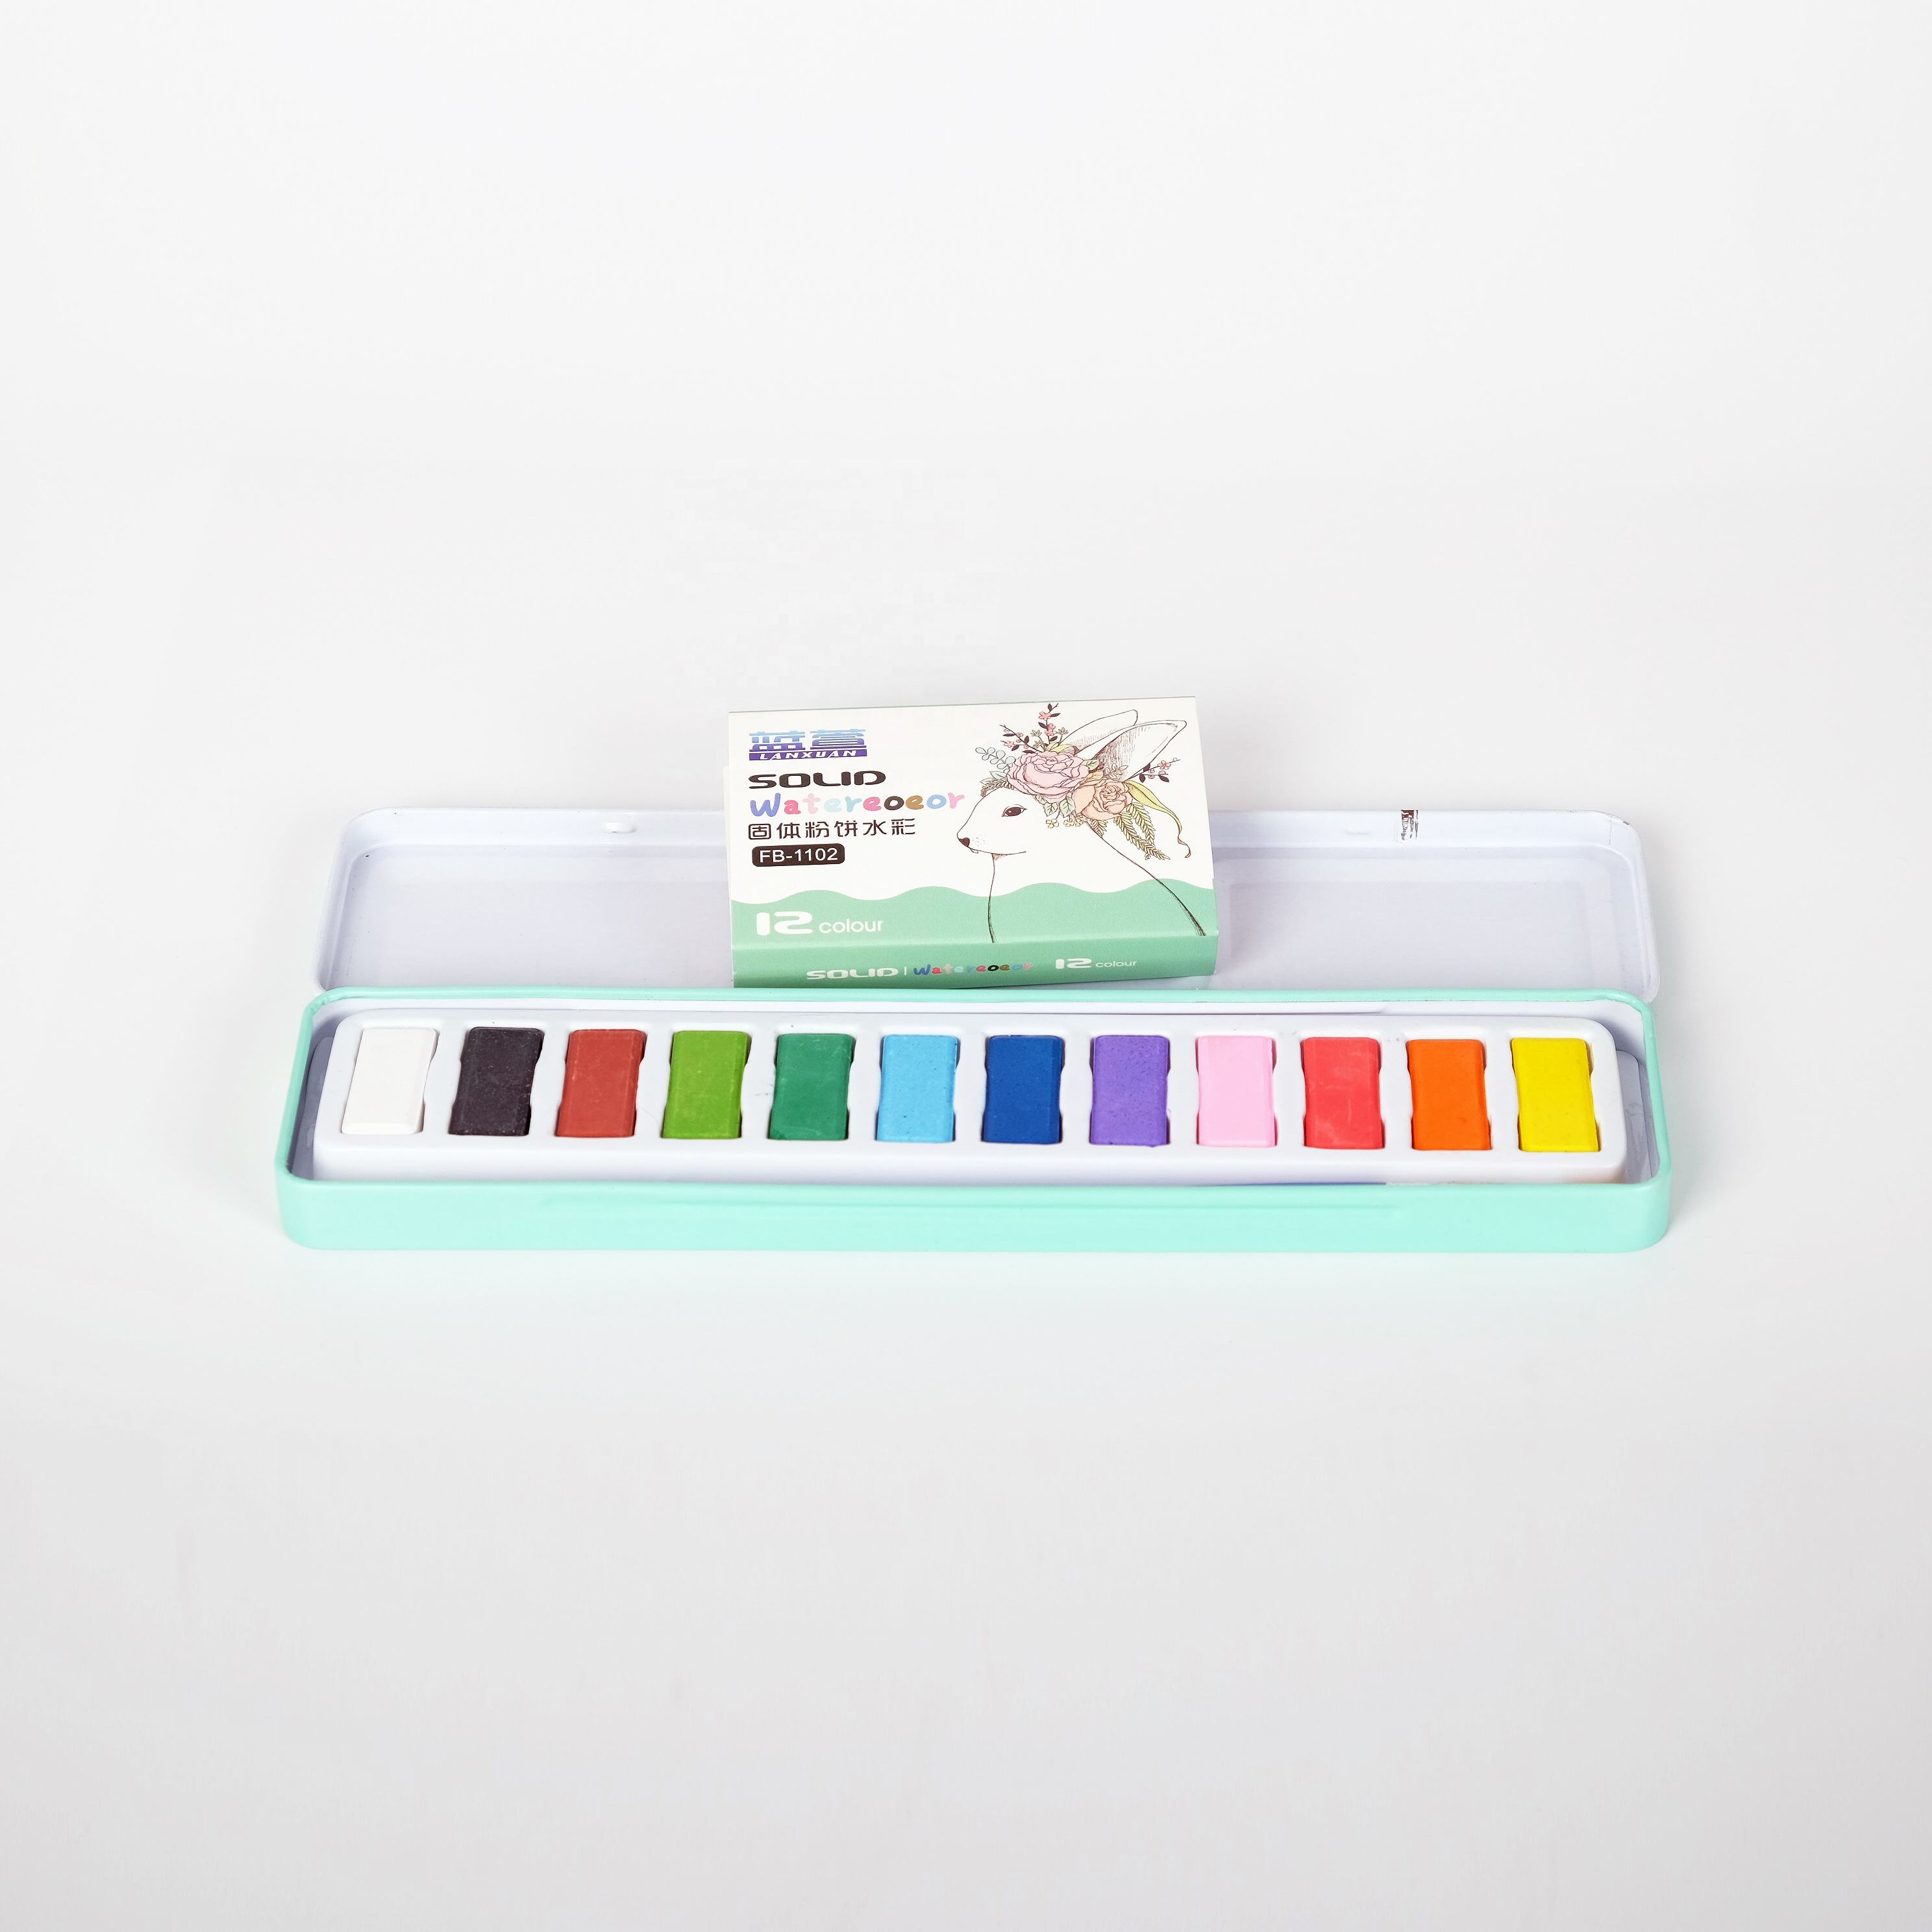 water color paint for Kids School DIY watercolors paint set with brush 12 colors